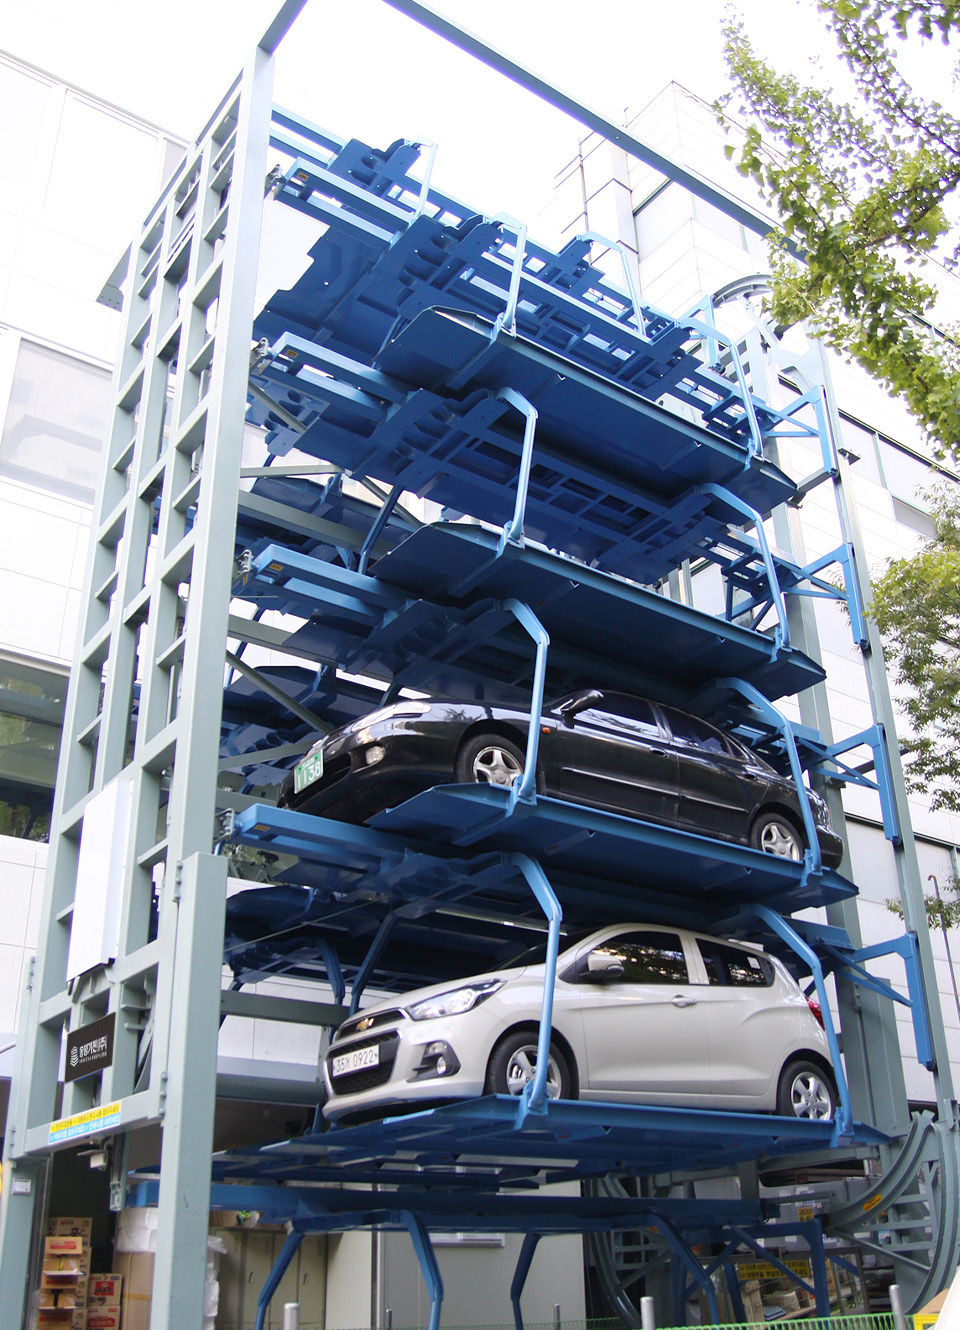 Automated Car Parking, Smart Parking, Mechanical Parking, Robotic Parking